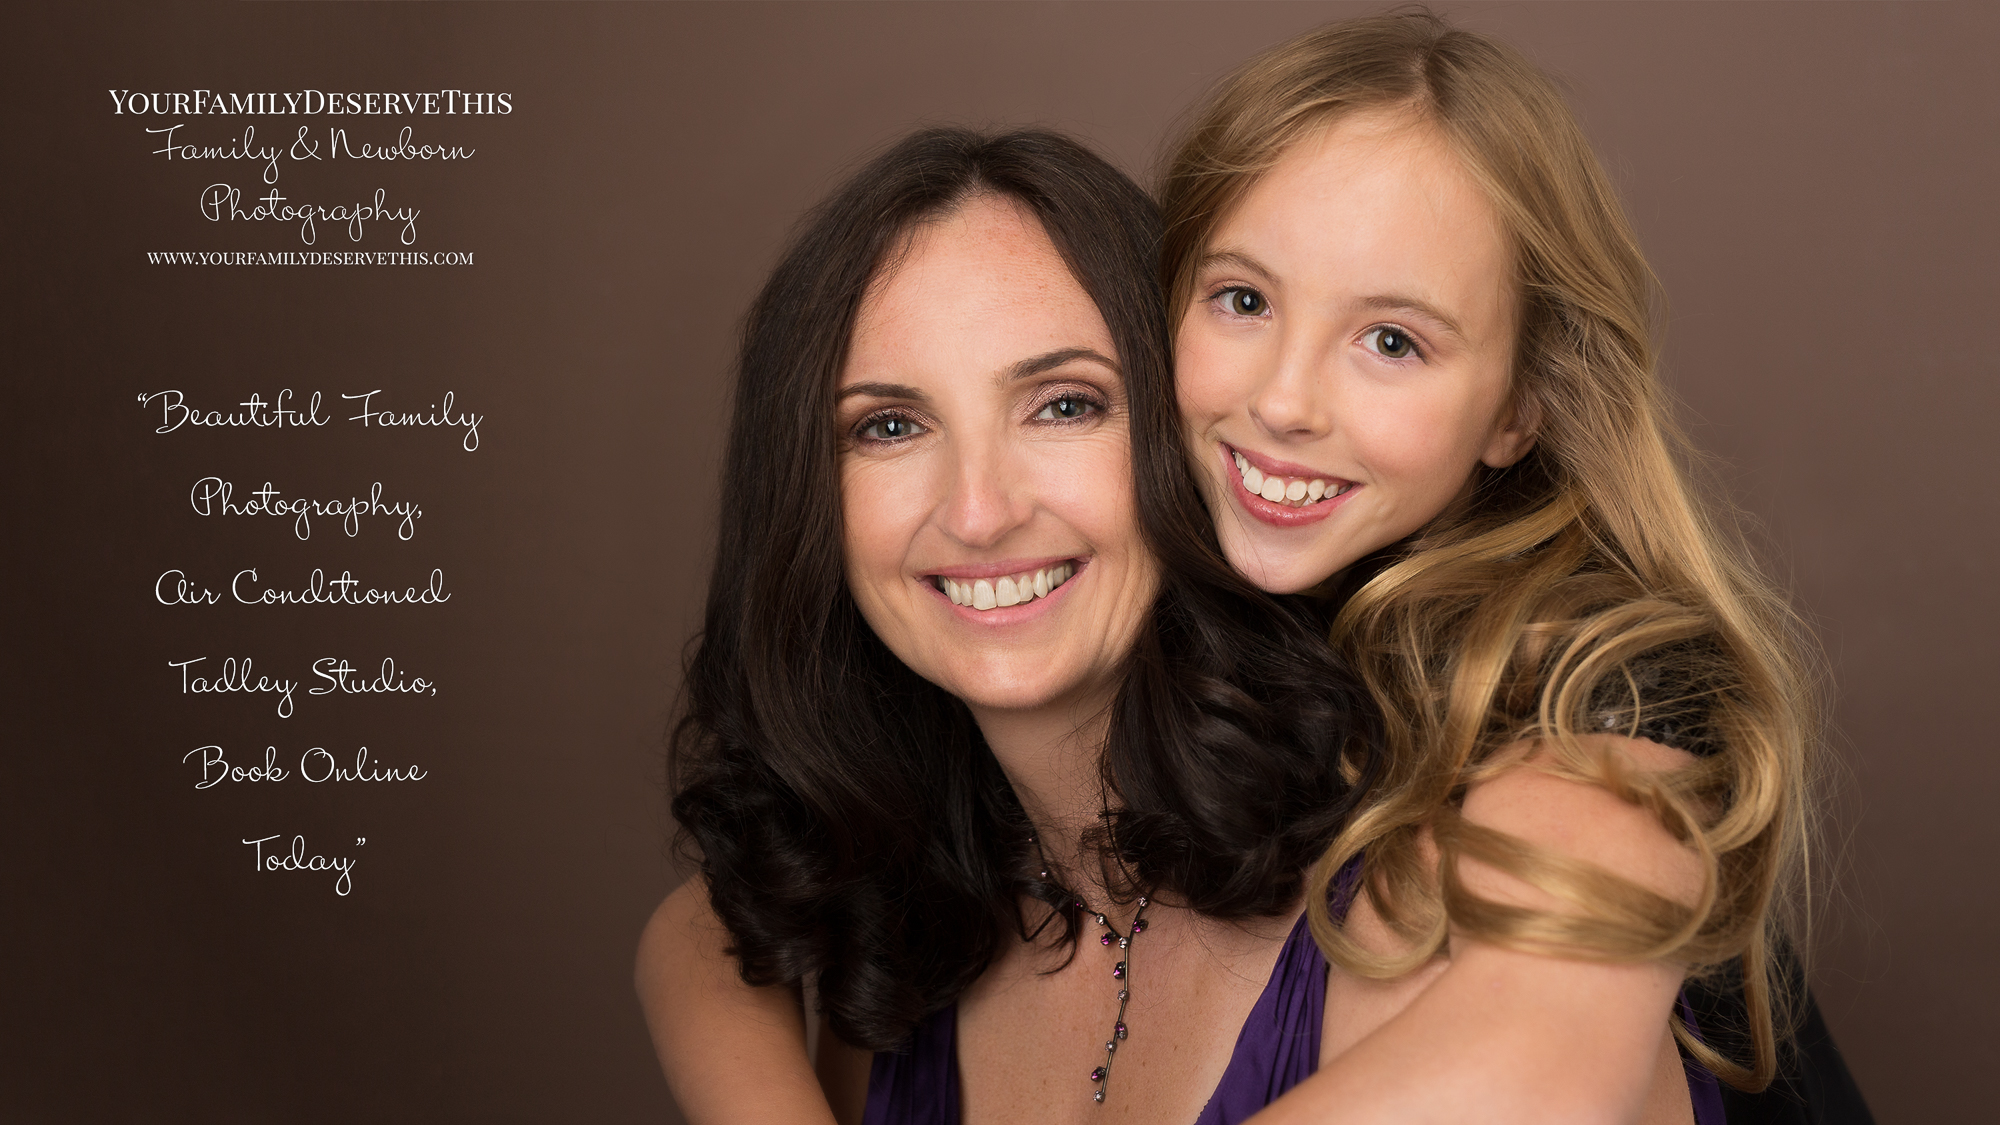 Wonderful family photo's at our air conditioned Studio in Tadley, Hampshire https://www.yourfamilydeservethis.com